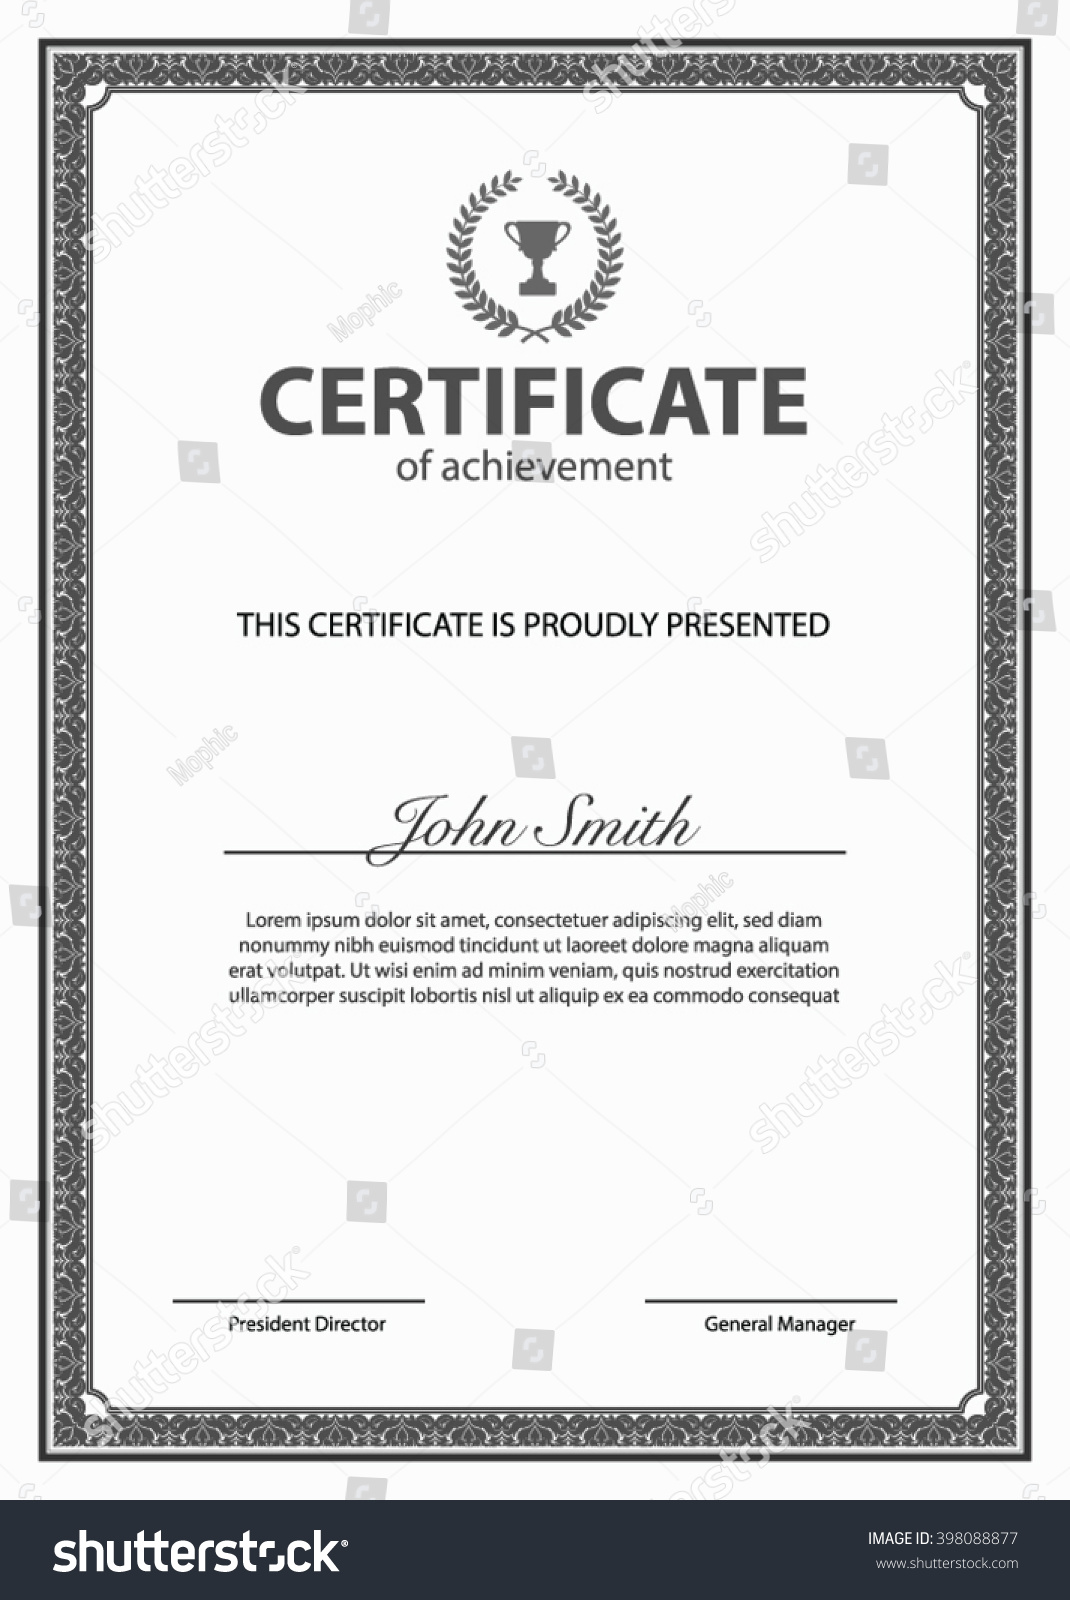 Employee recognition certificate template update234com guest employee recognition certificate template update234com employee recognition certificate template update234com xflitez Image collections